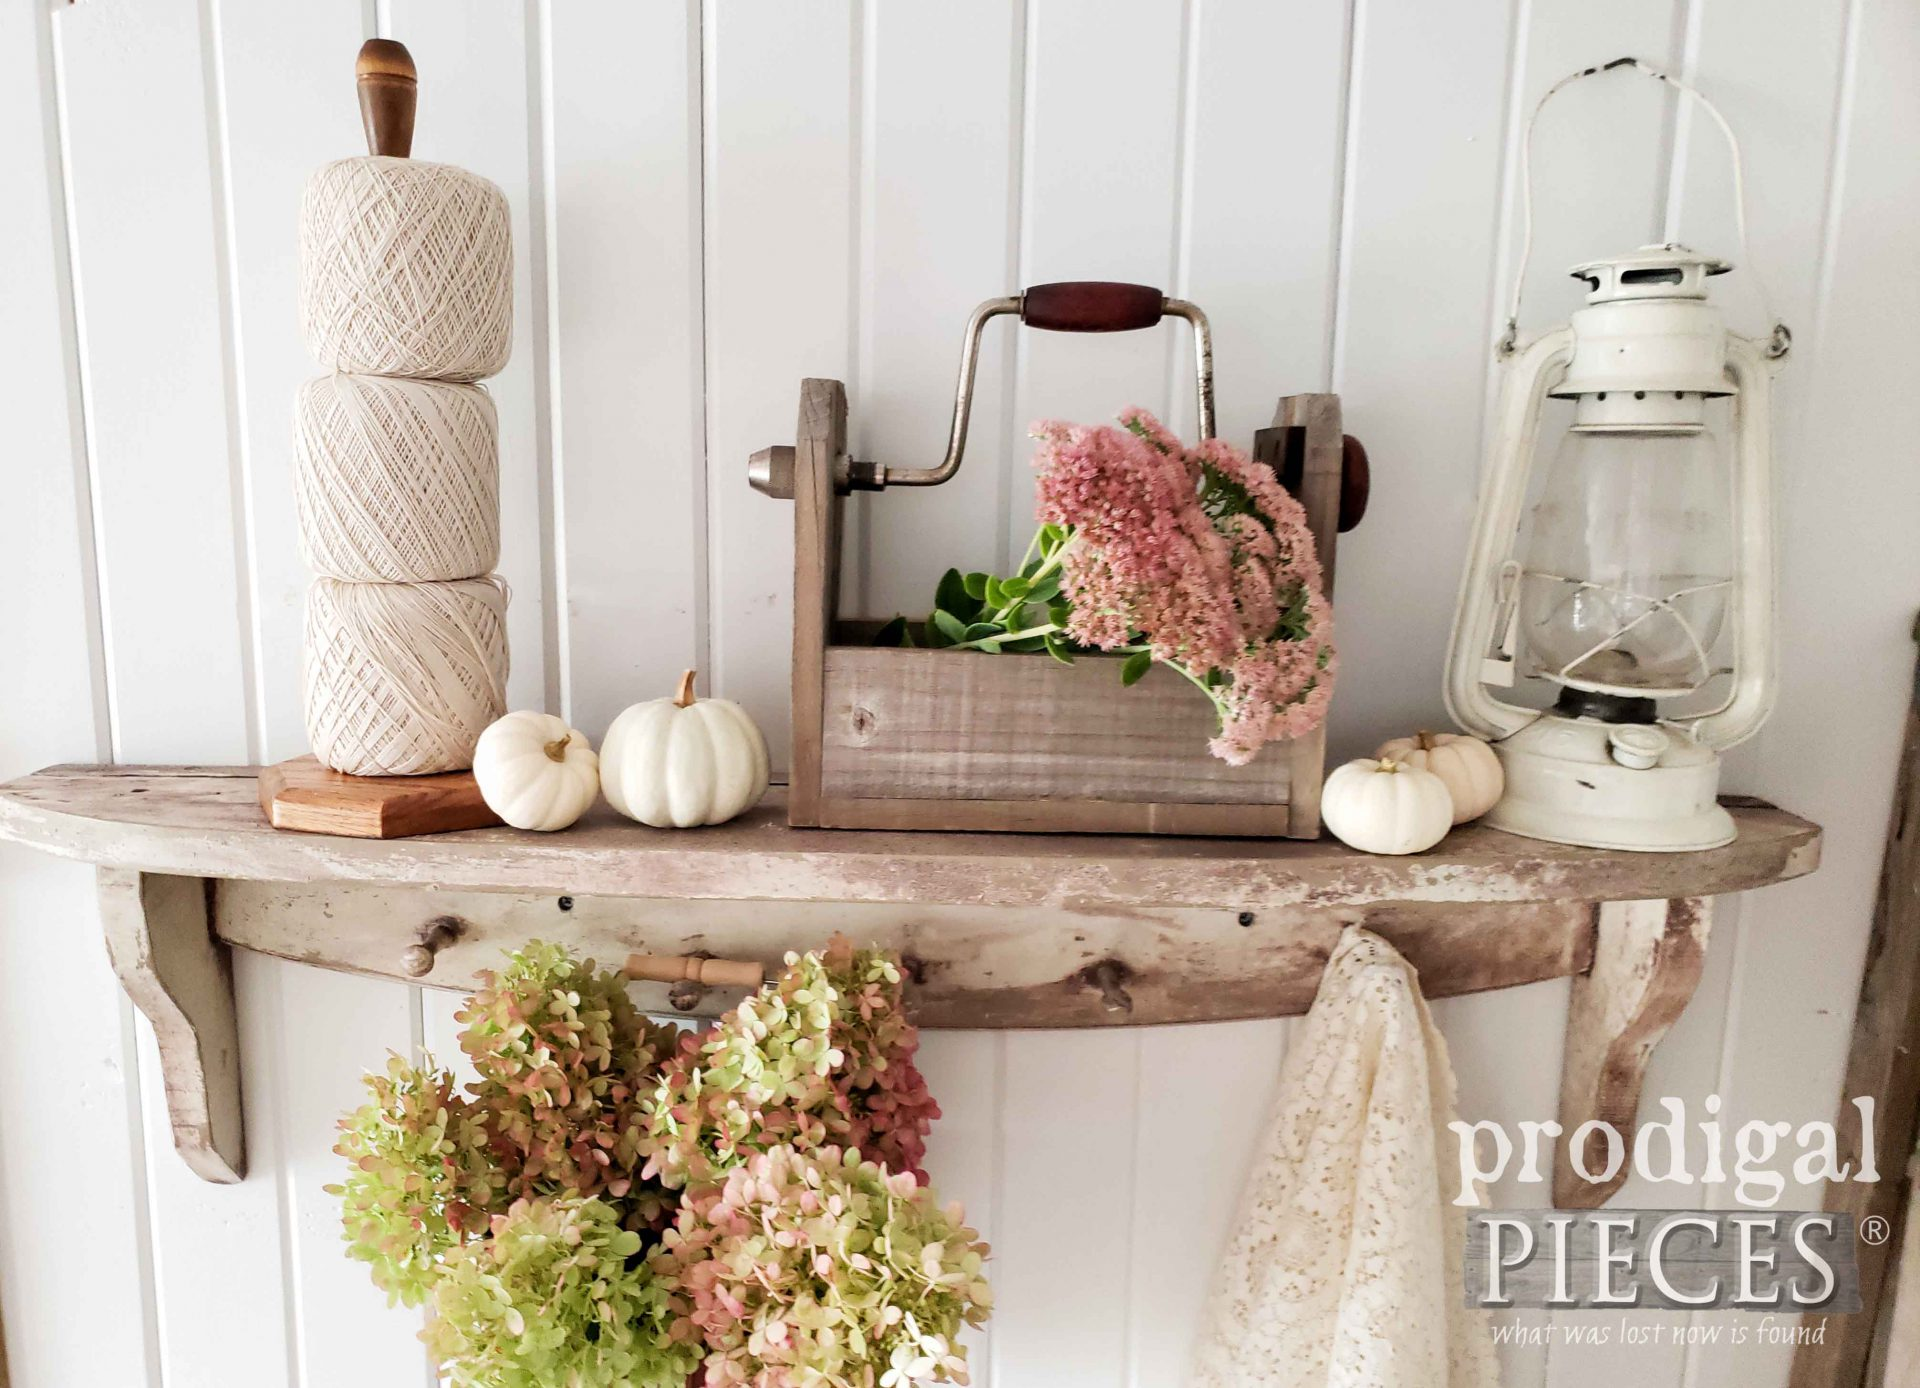 Handmade Farmhouse Fall Vignette by Larissa of Prodigal Pieces with video demo | prodigalpieces.com #prodigalpieces #farmhouse #homedecor #handmade #fall #home